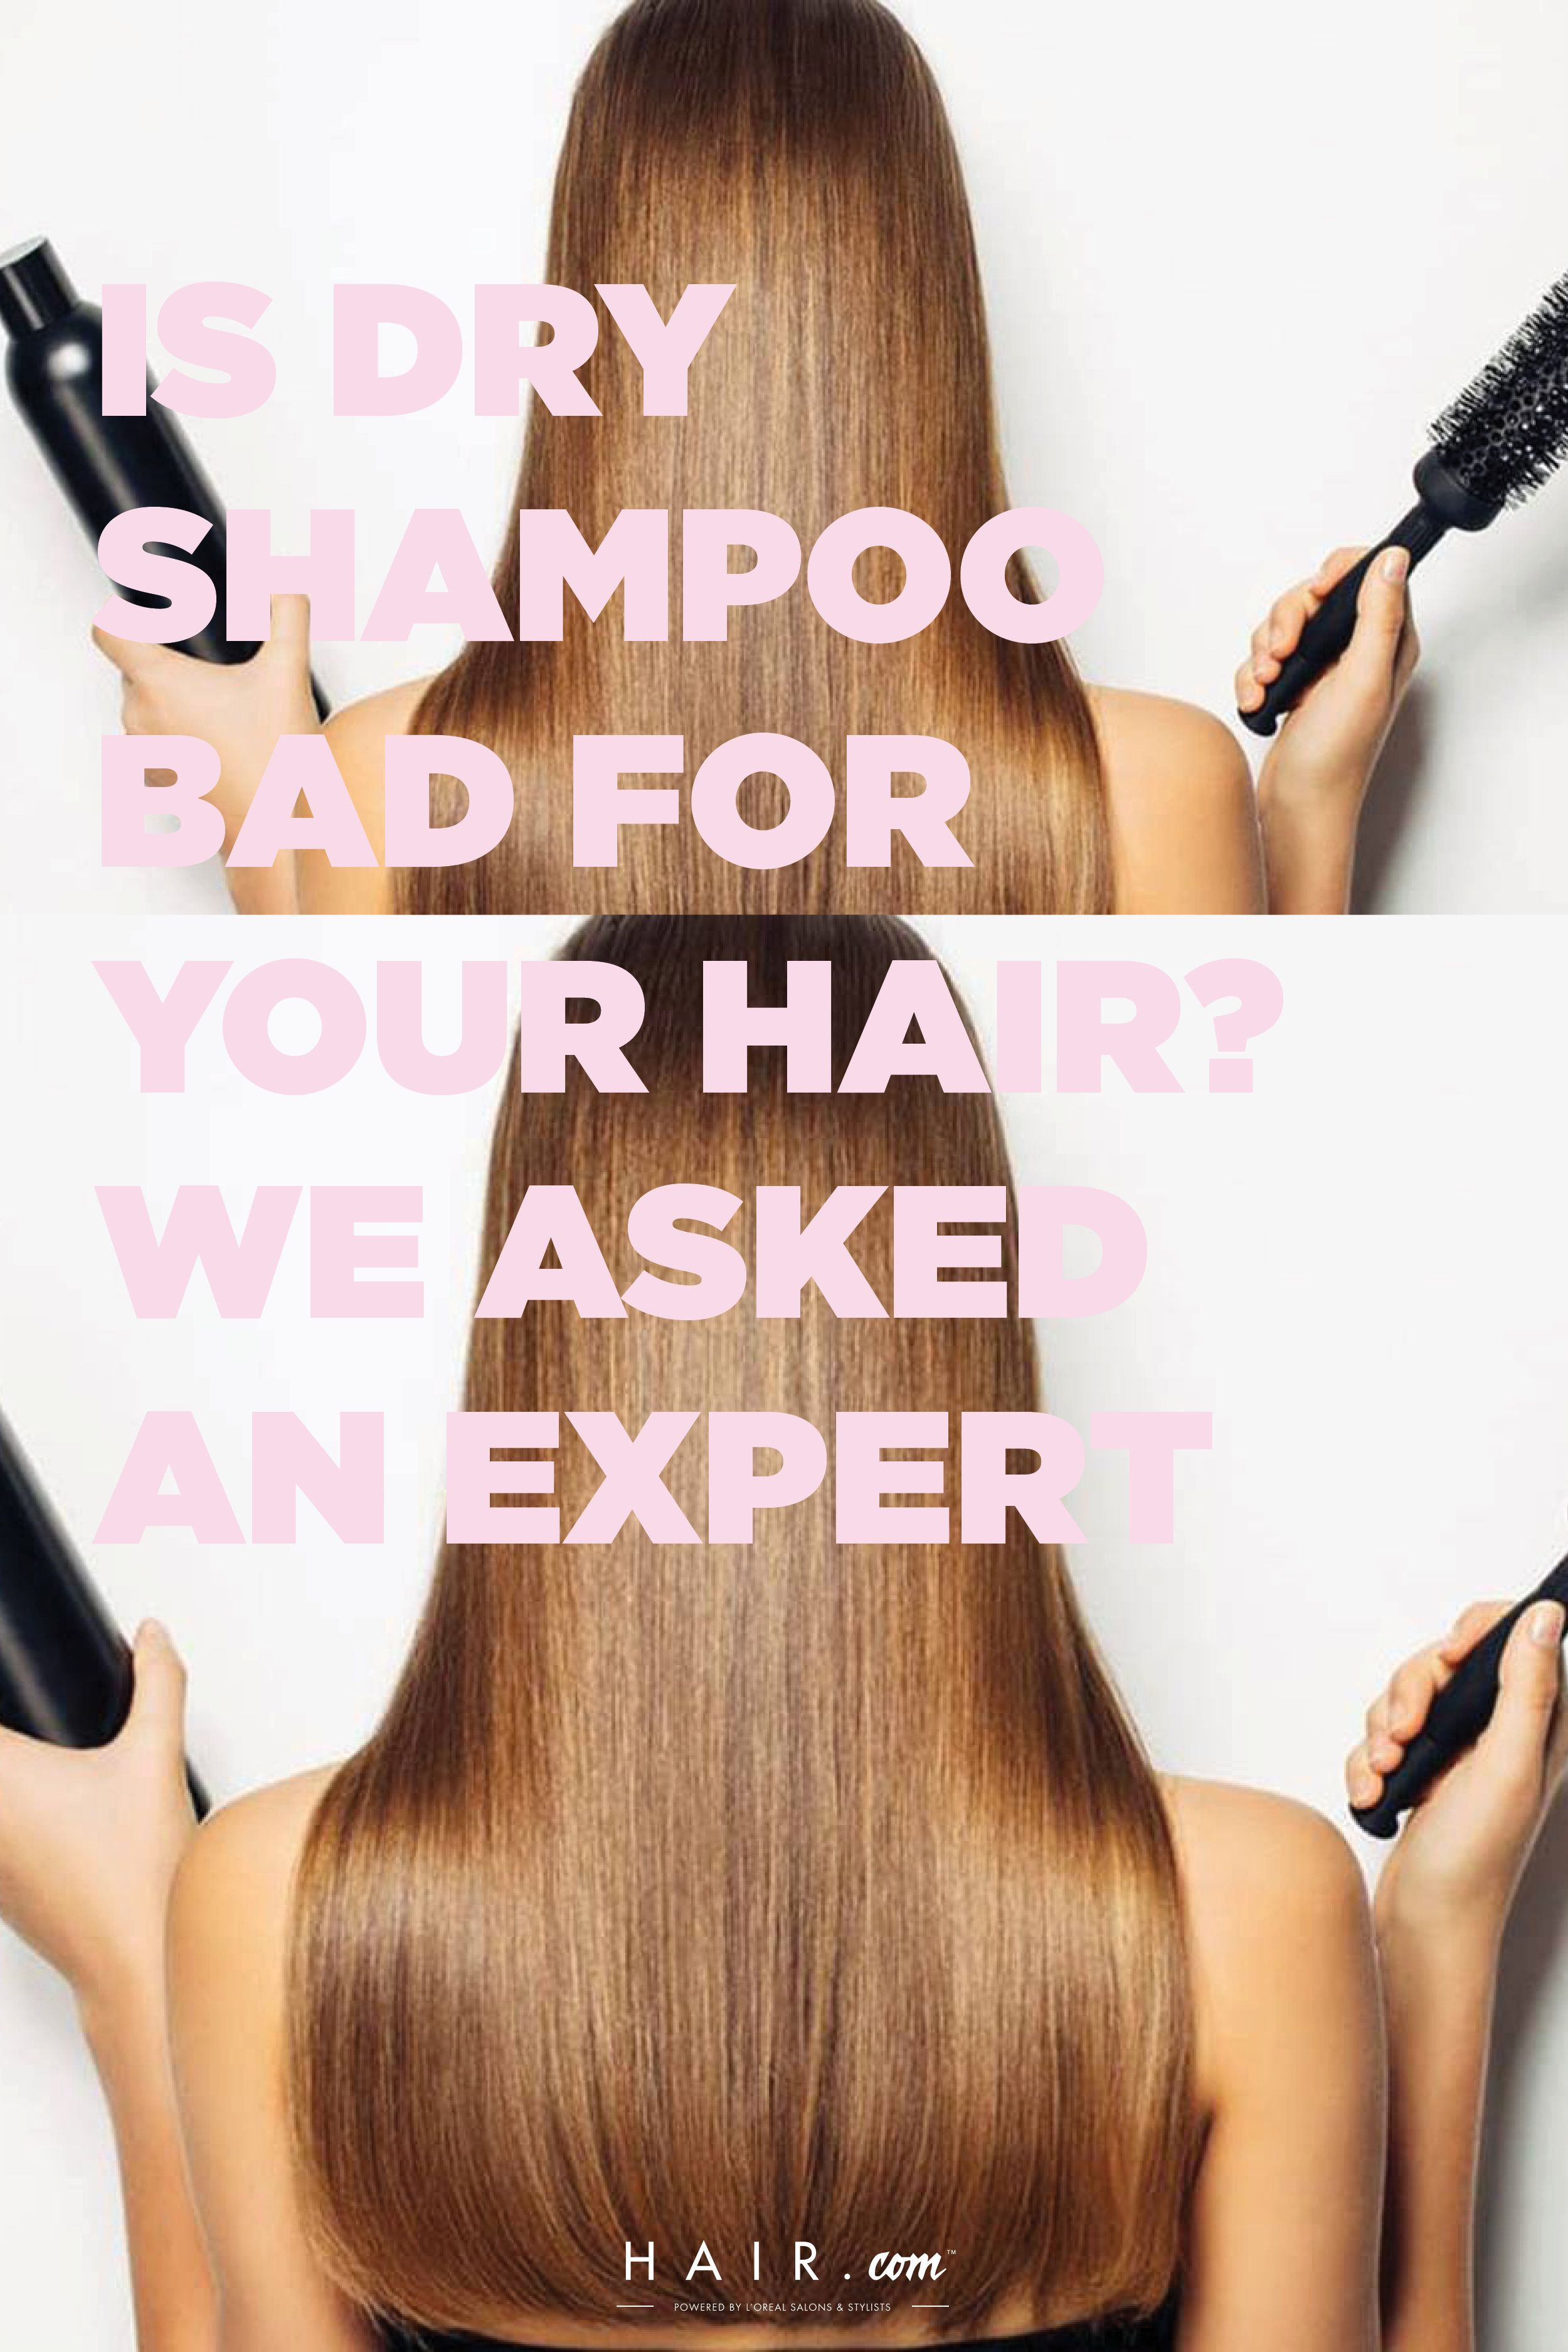 If You Re Running On Coffee And Dry Shampoo You Must Have Wondered If Dry Shampoo Is Bad For Your Hair If So We Got You Covered Your Hair Dry Shampoo